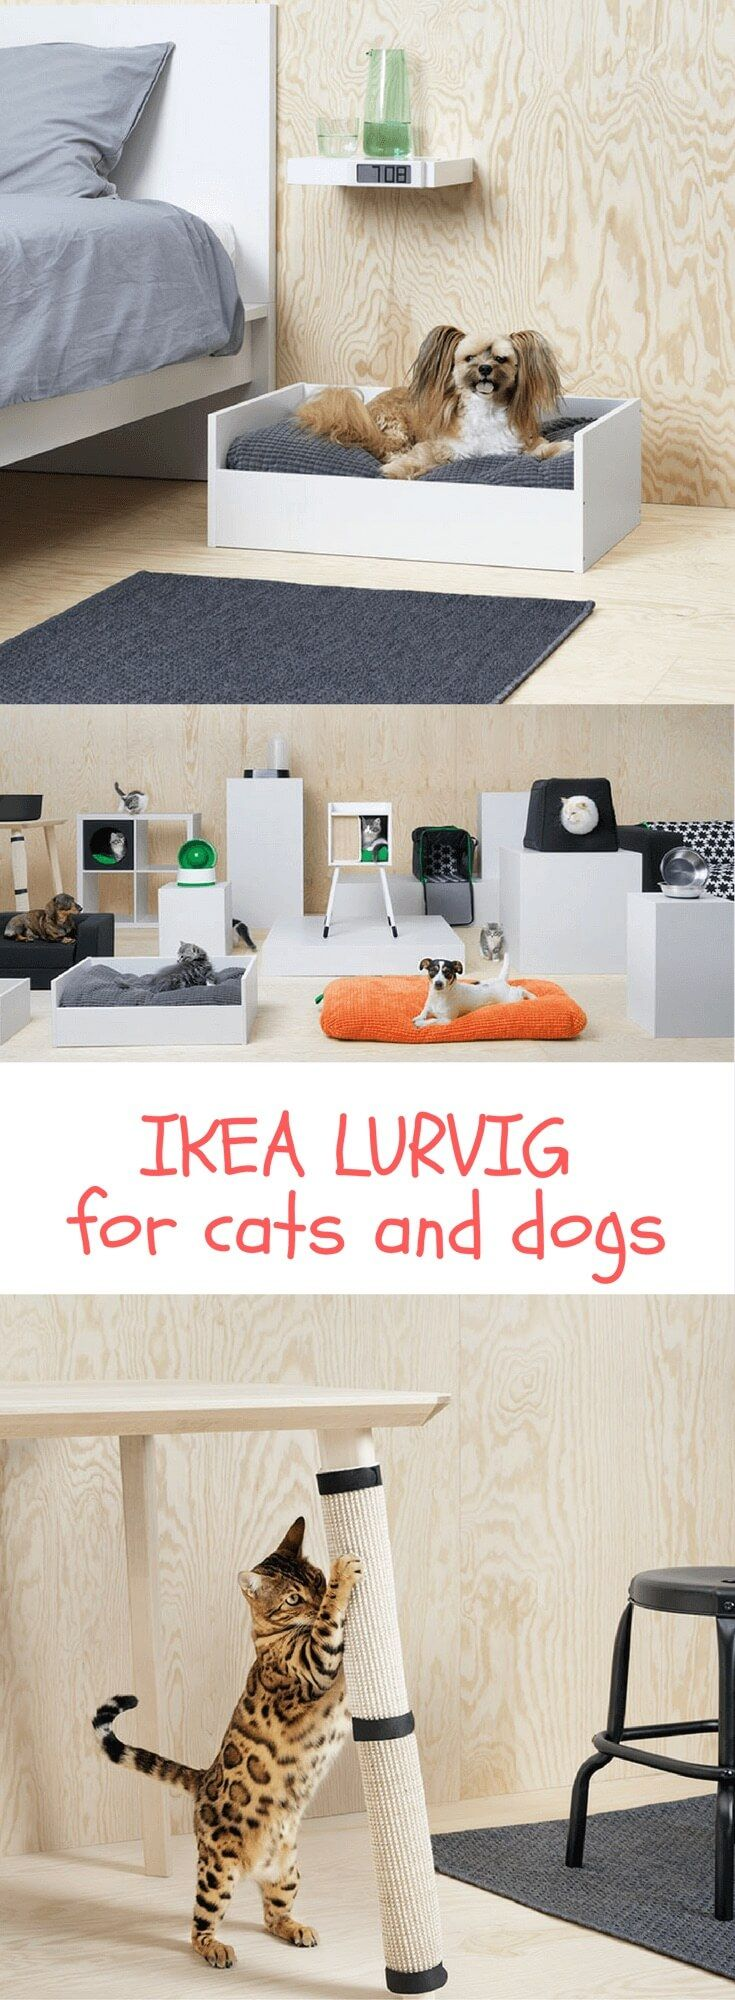 IKEA just launched an absolutely fur-bulous range http://www.ikeahackers.net/2017/10/ikea-lurvig-pet-furniture-dogs-cats.html